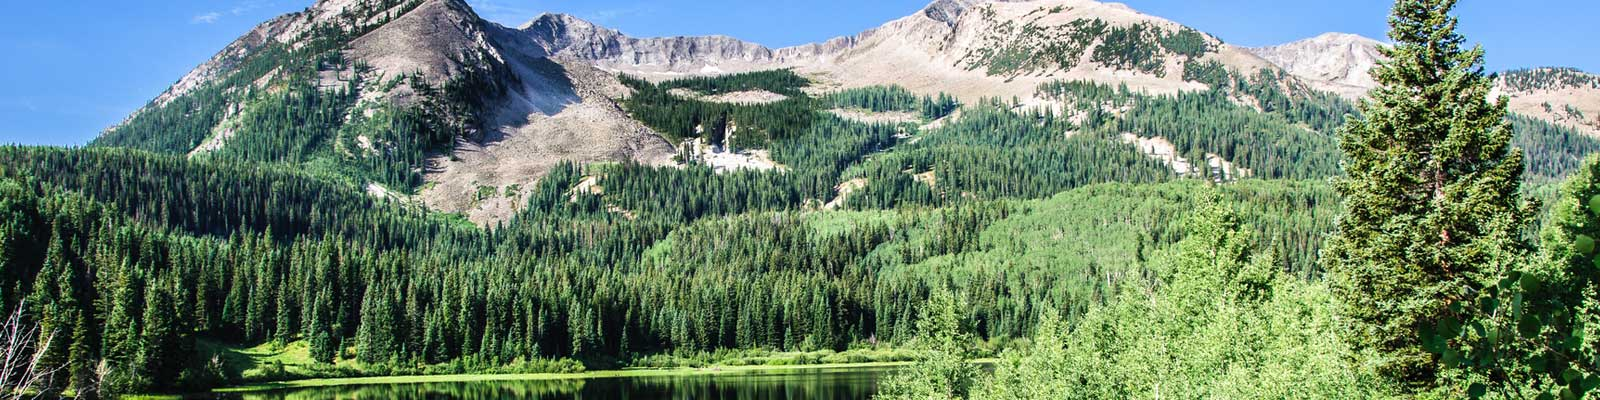 USA Real Estate Investment, Retirement, Vacation, Residential and Commerical Properties - Colorado